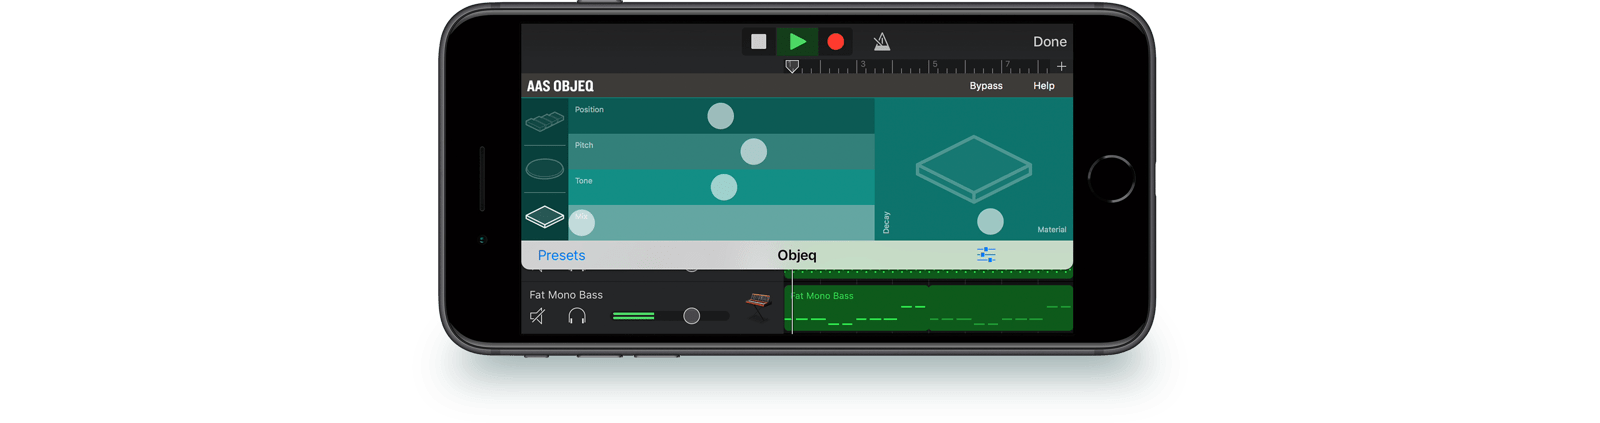 Here's Objeq running inside GarageBand on iPhone.